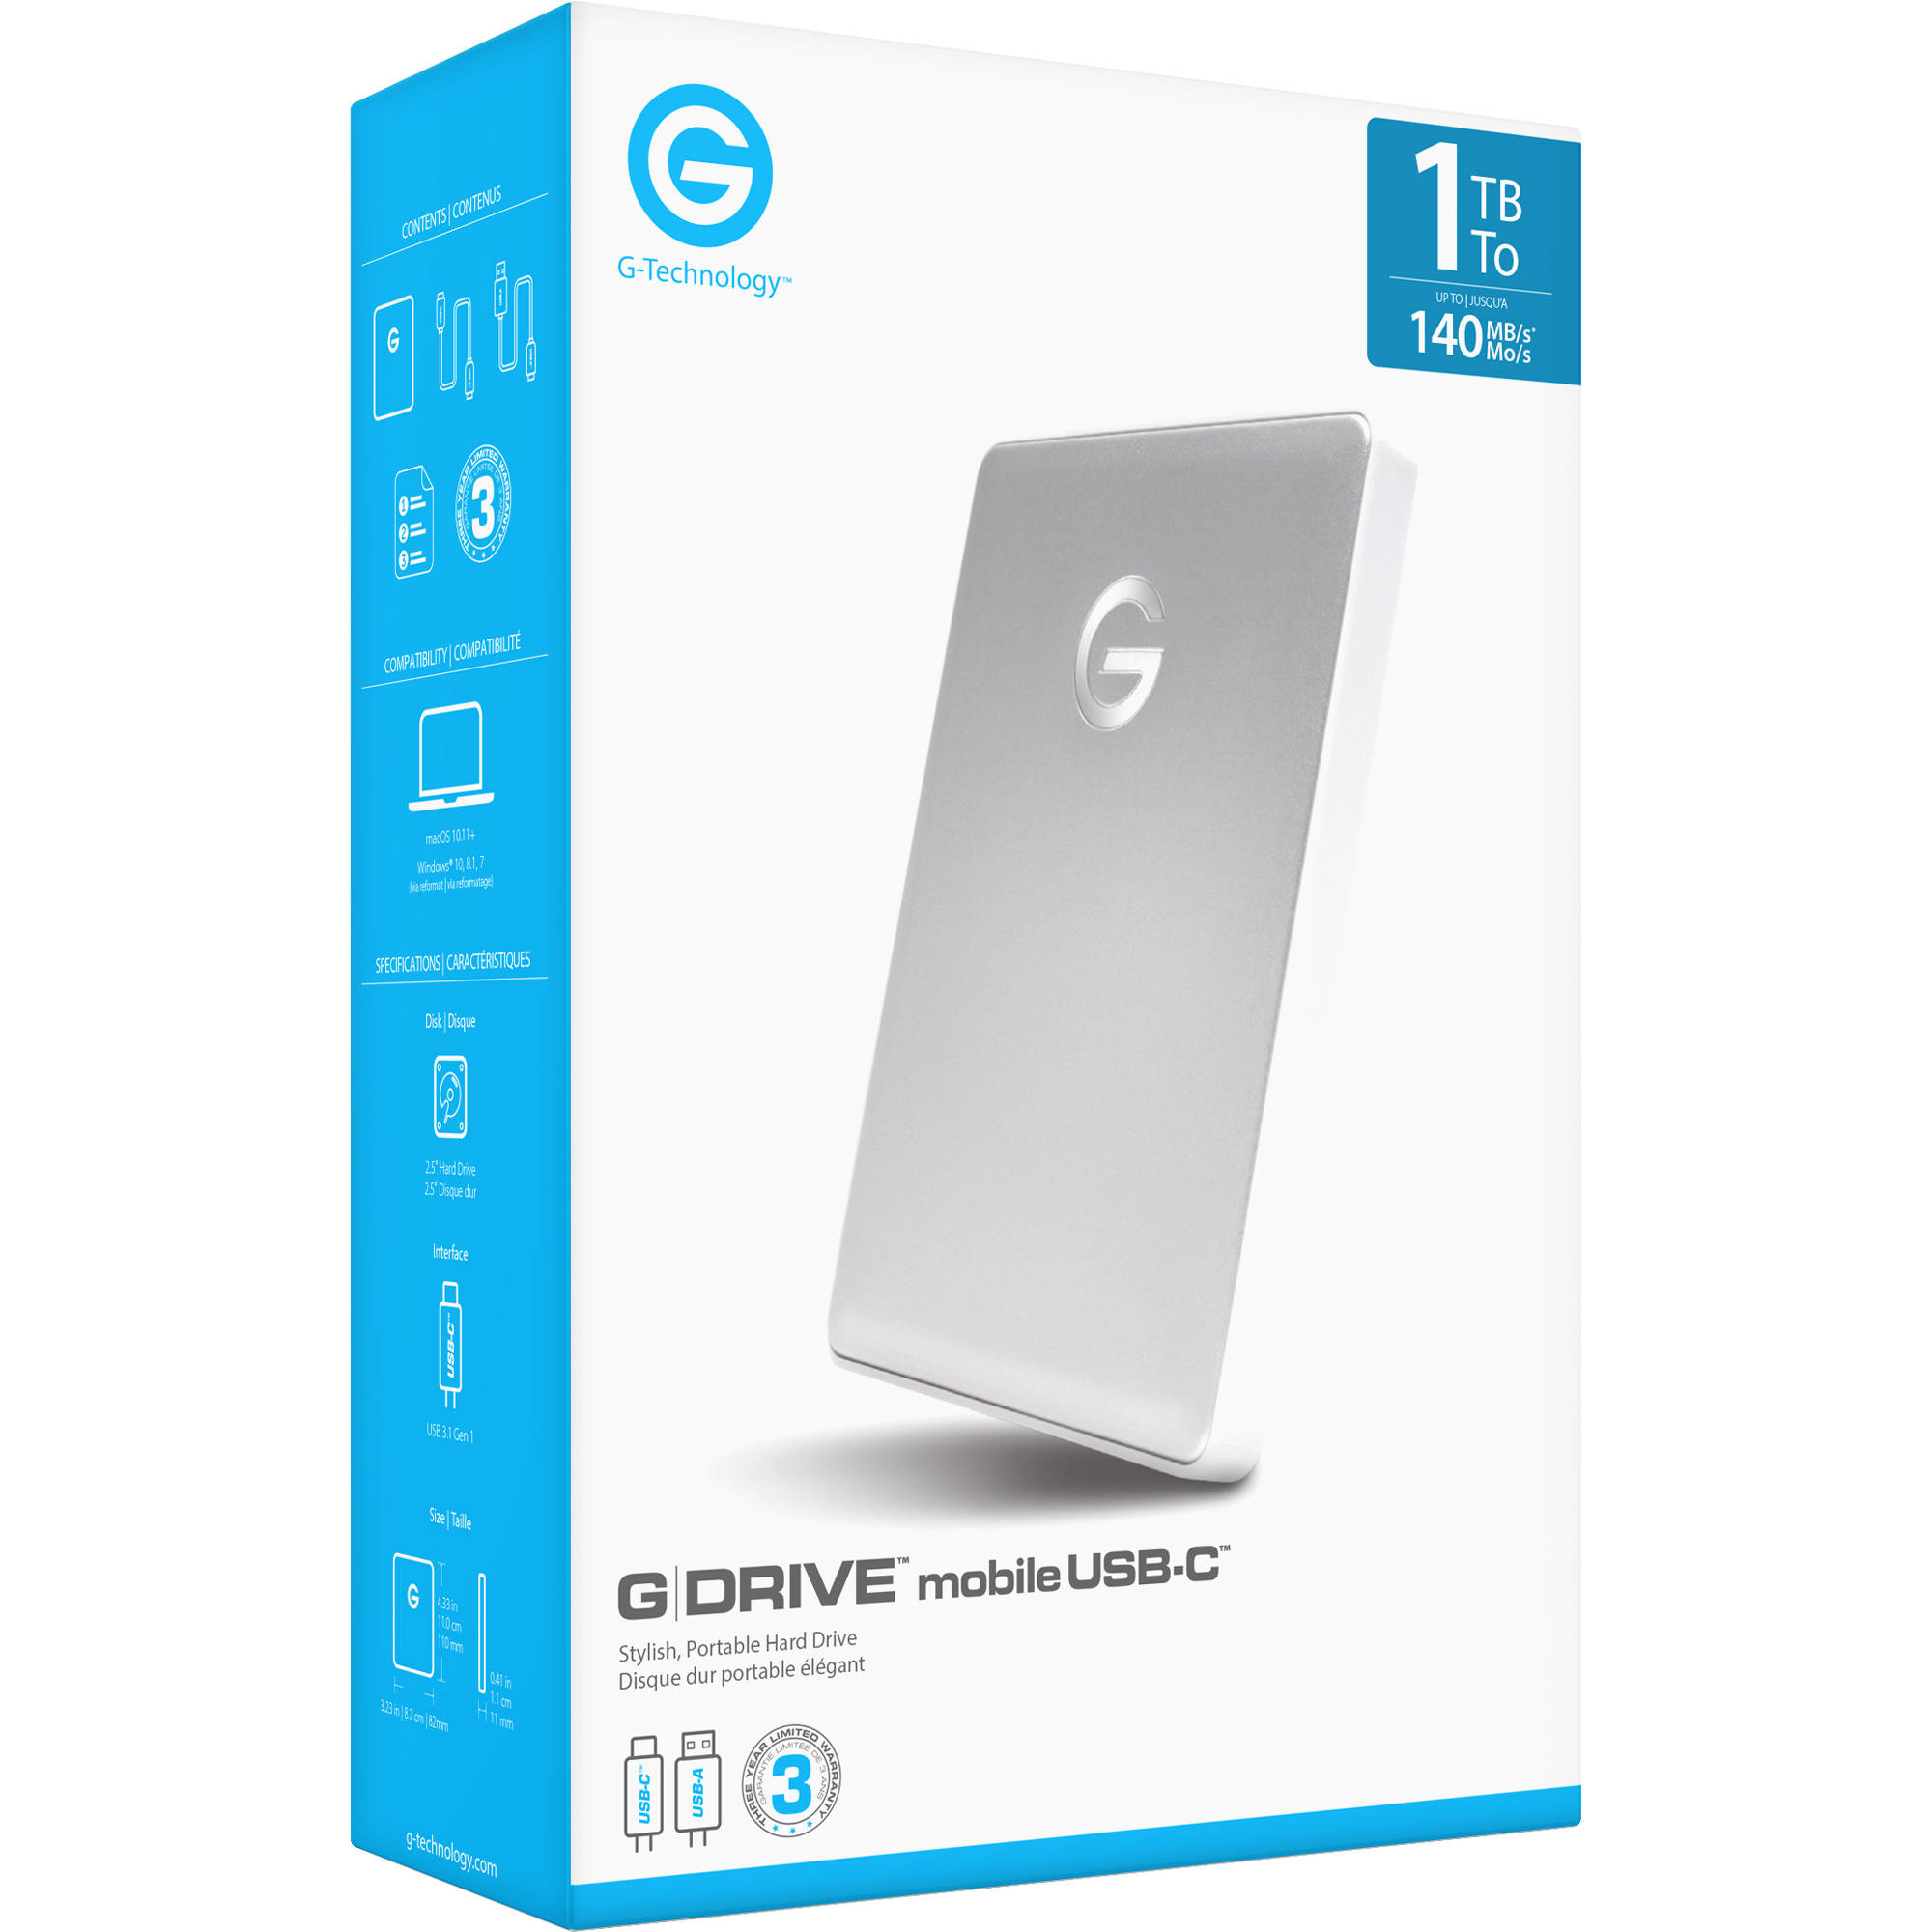 G-Technology 0G10264 1TB G-DRIVE mobile USB-C Portable Hard Drive Silver